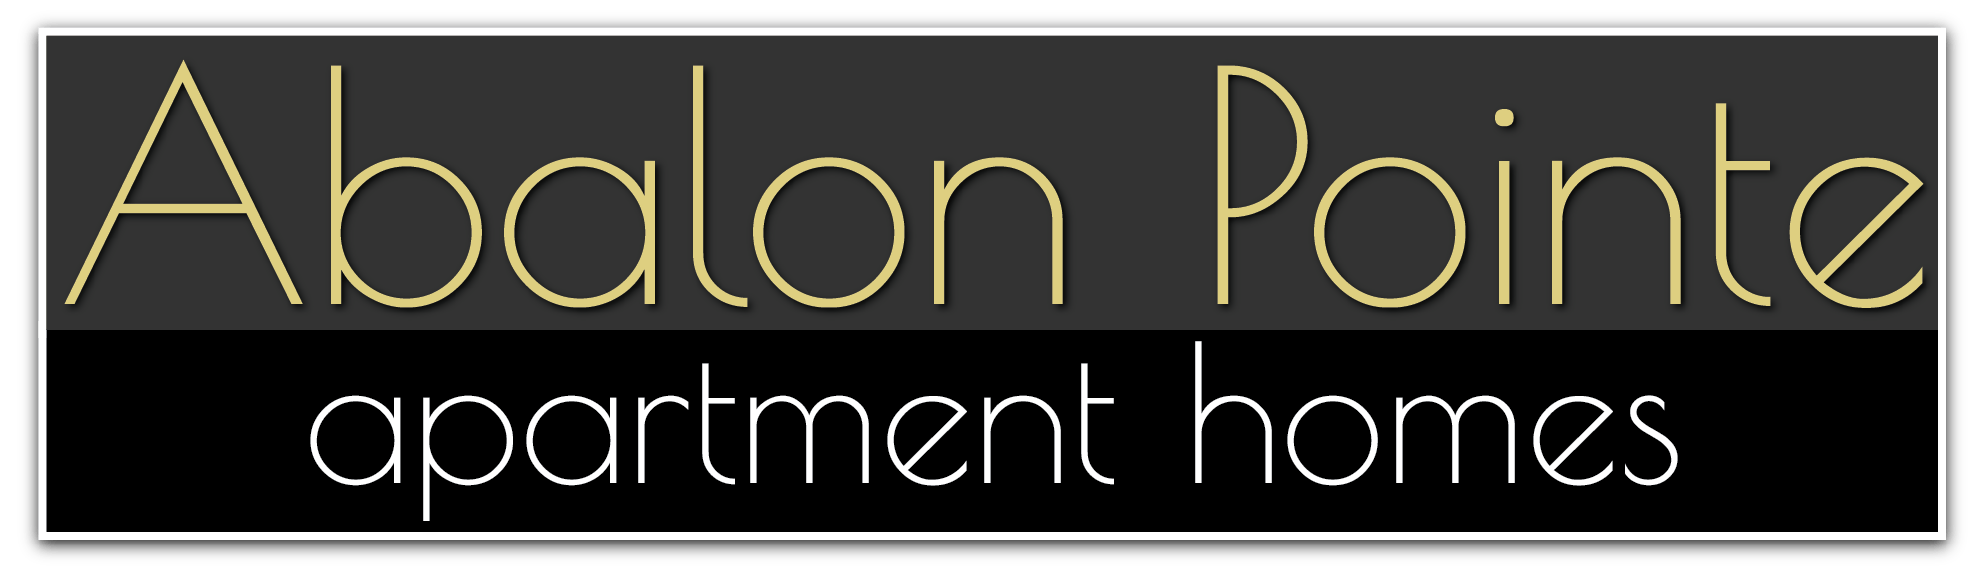 Abalon Pointe Apartments